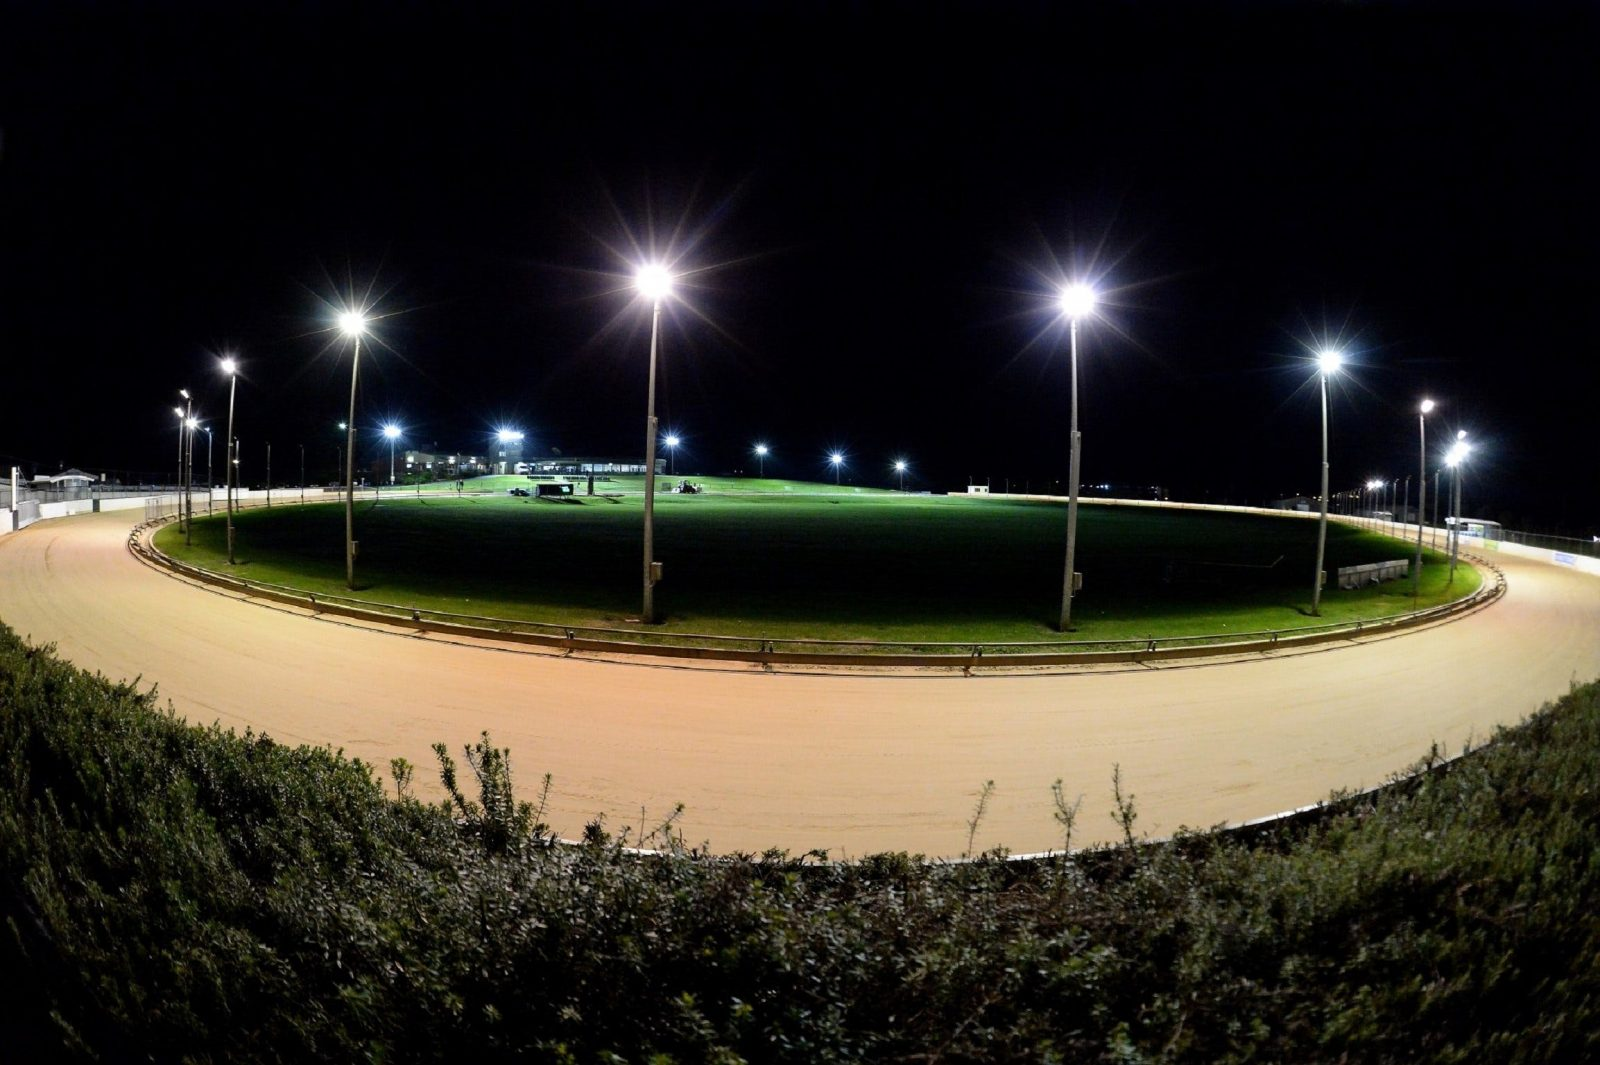 Warrnambool Greyhounds - Racing under lights every Thursday